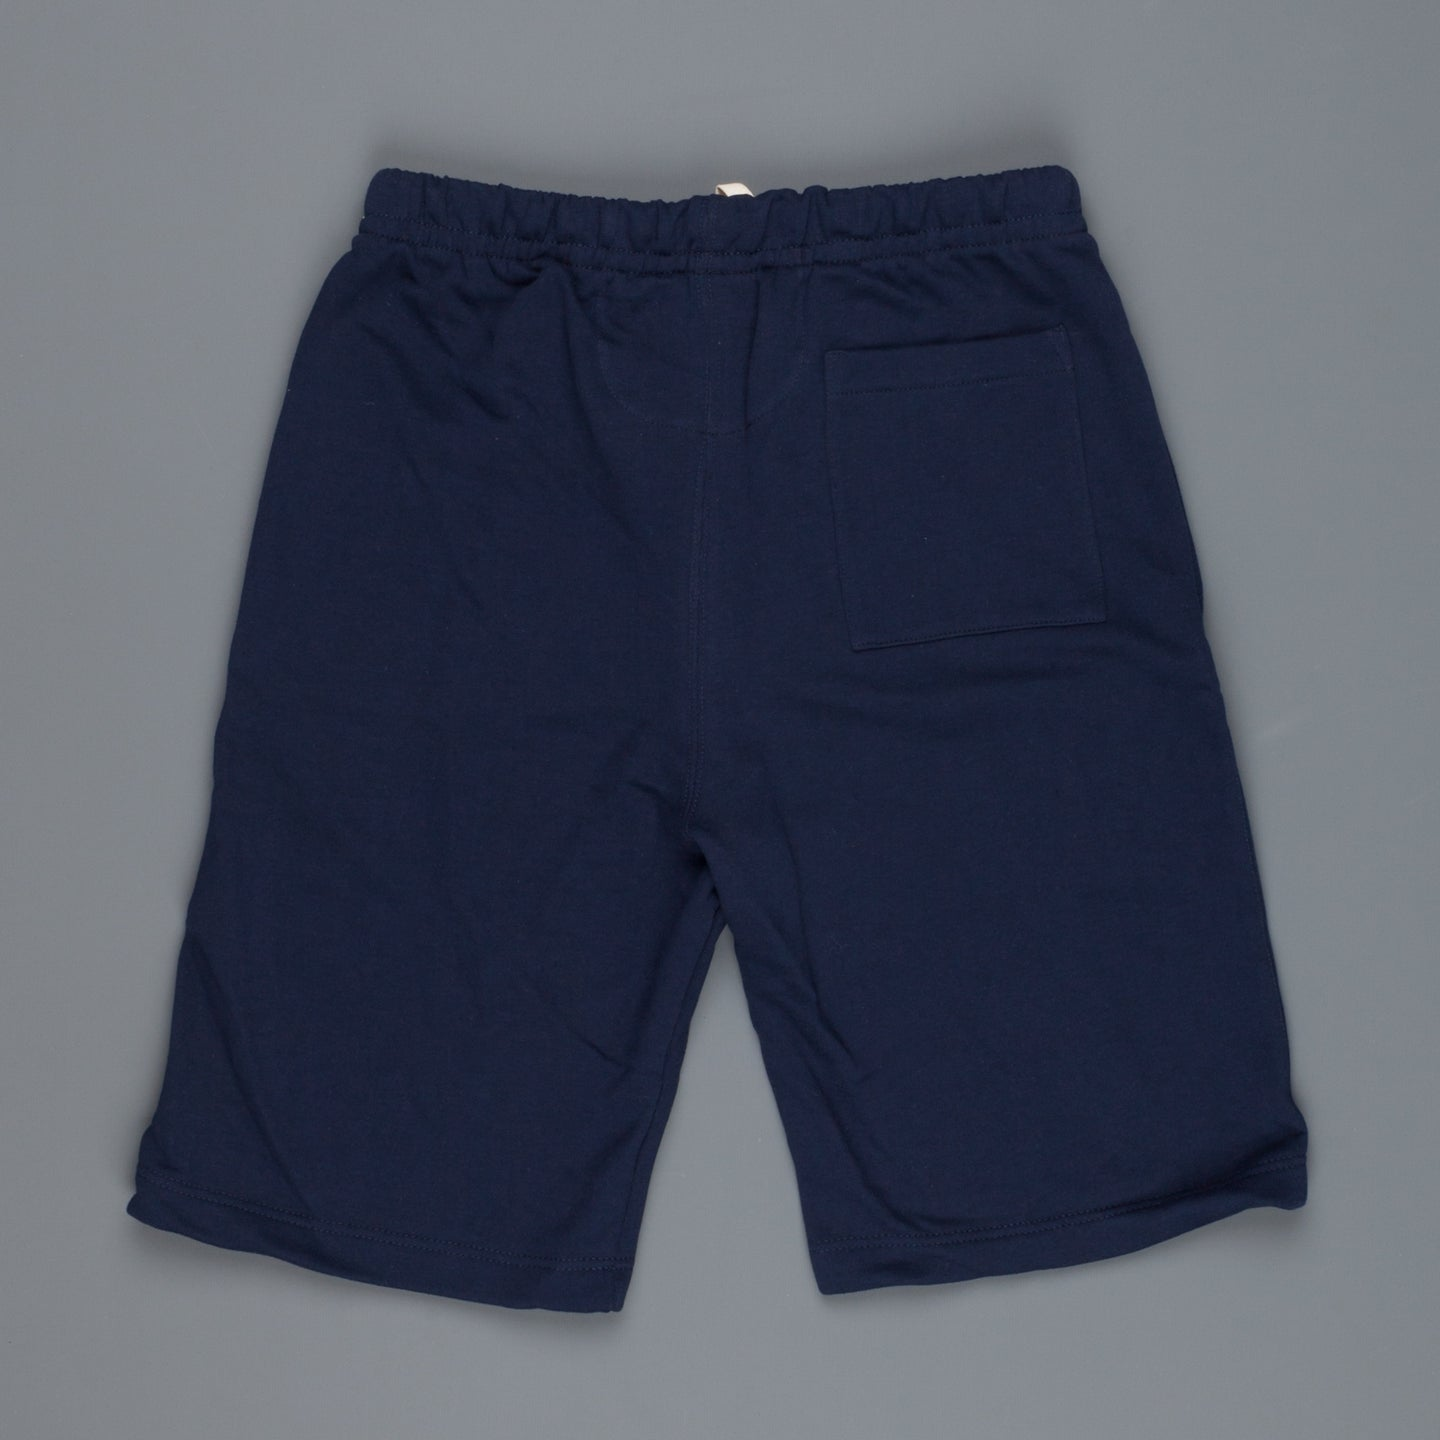 Merz B Schwanen 356 3 thread fleece sweatpants short 66 ink blue